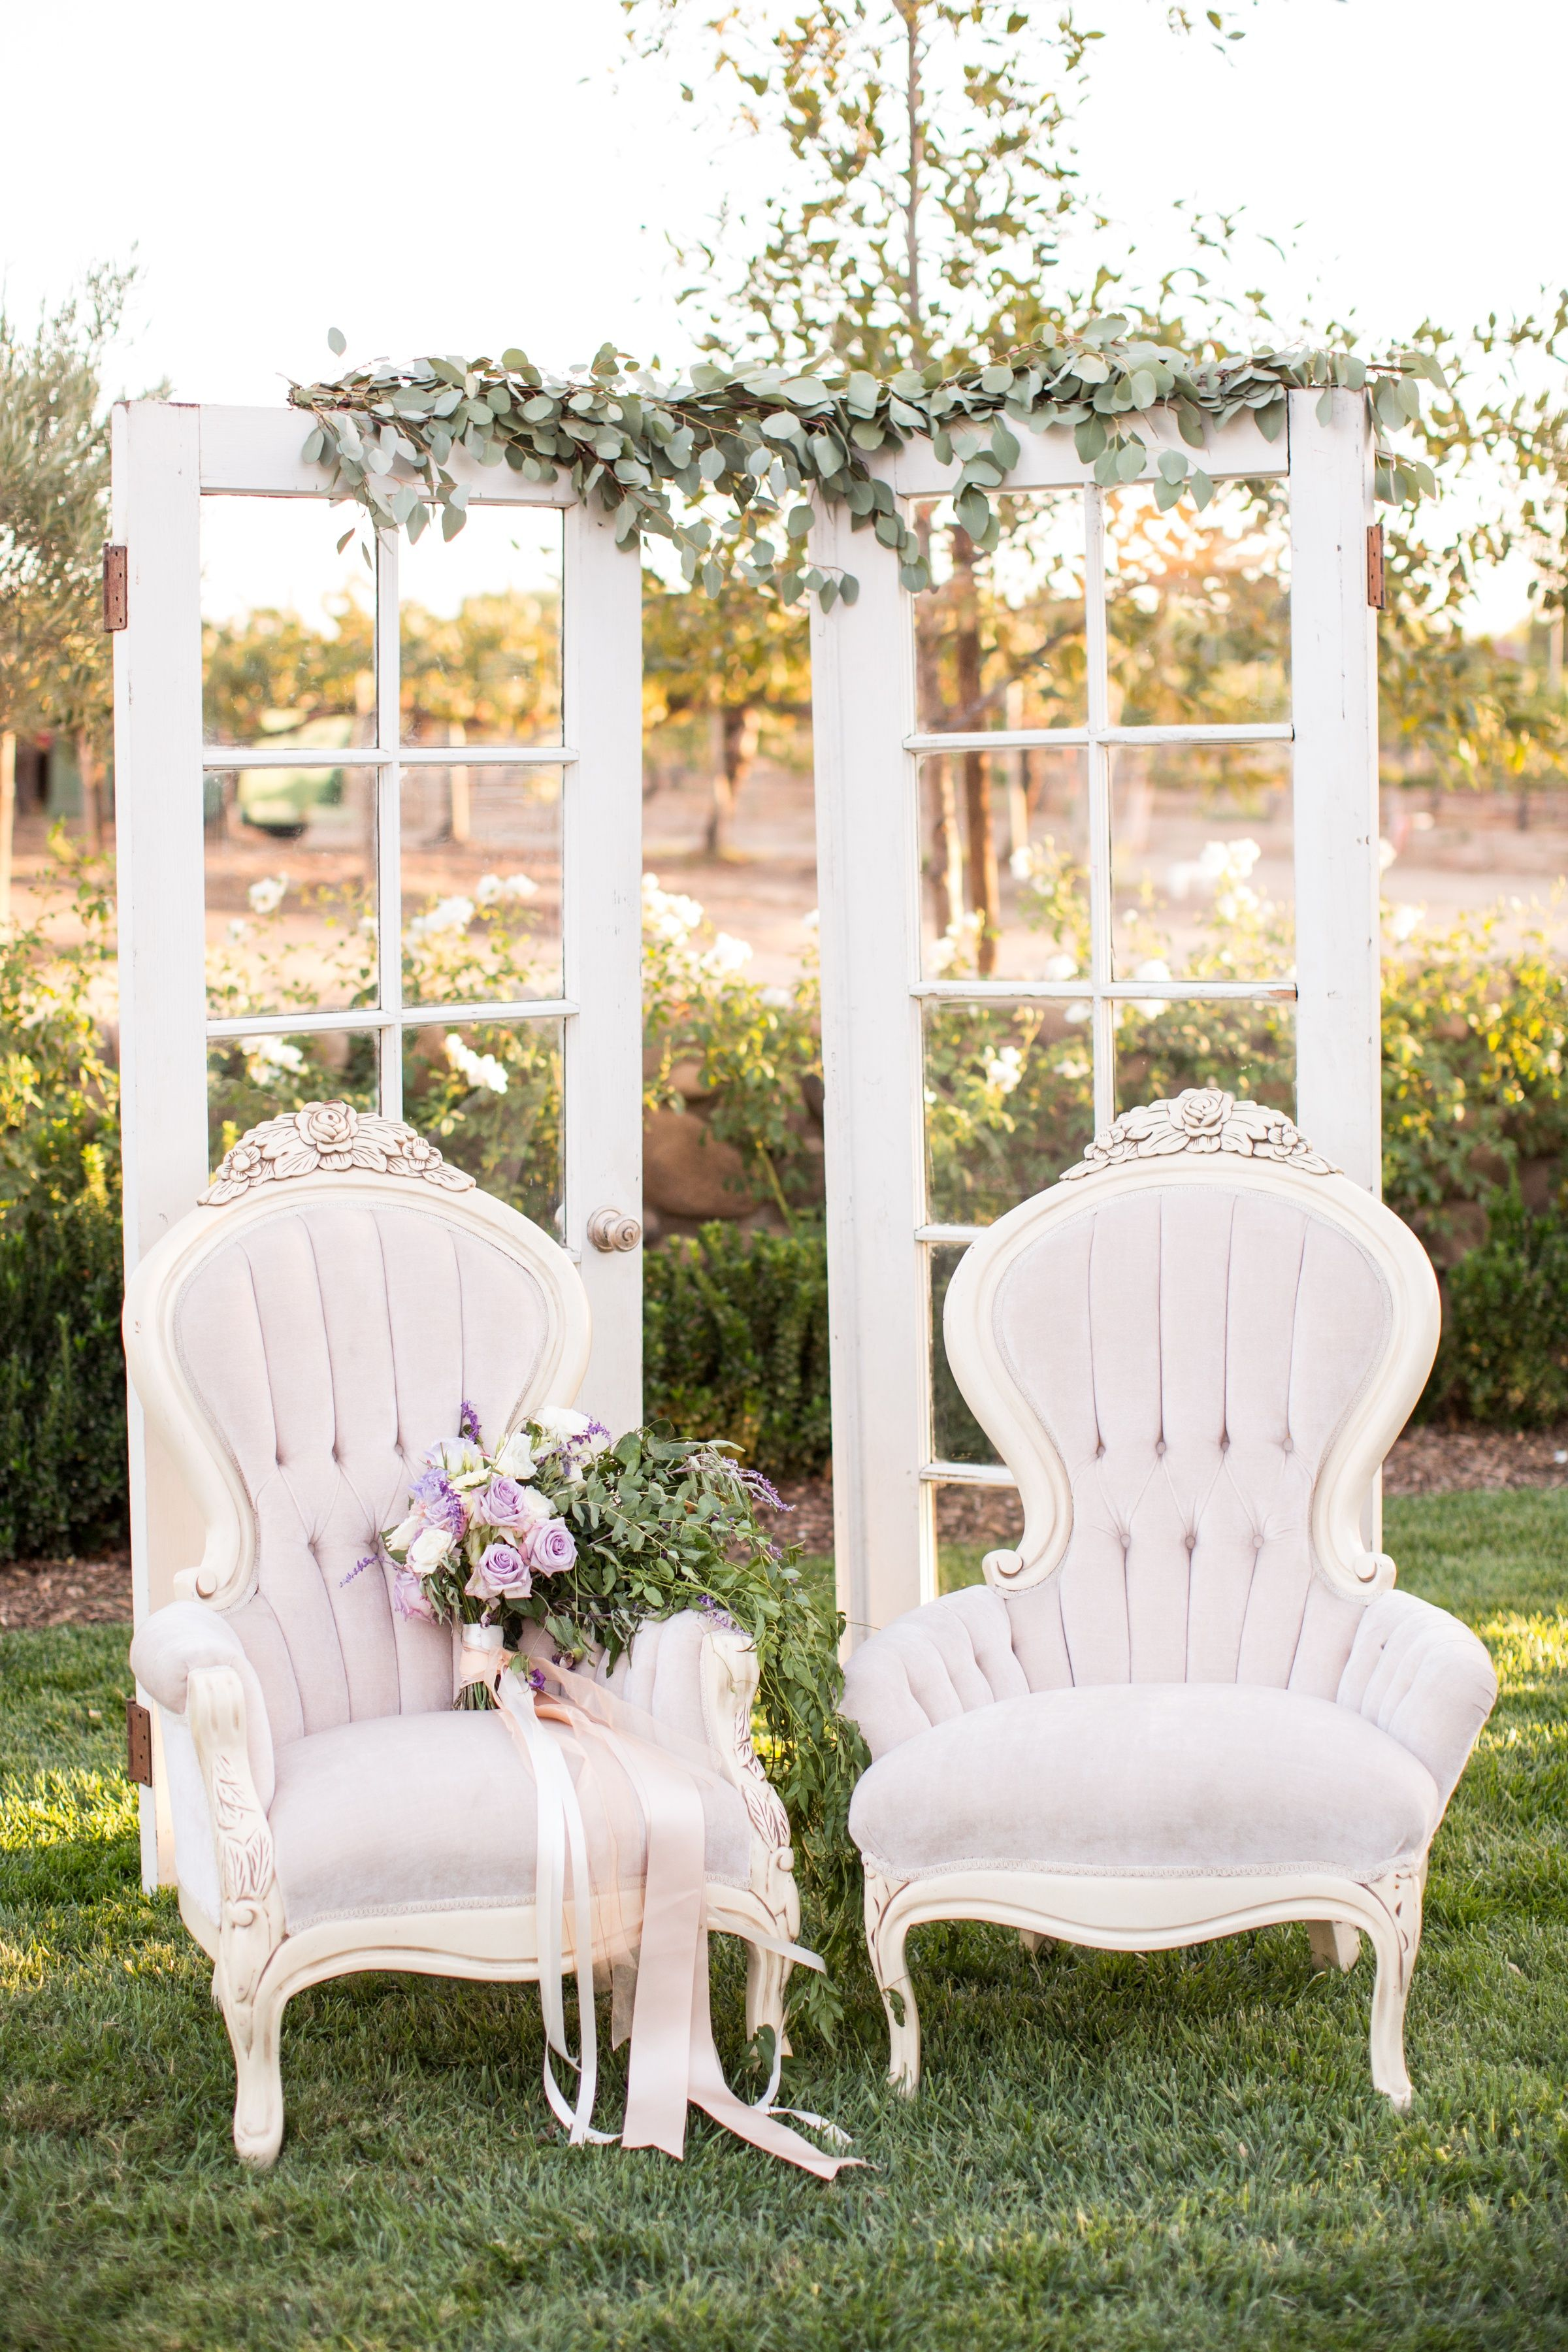 Lavender Vintage-Inspired French Chairs | Birds of a Feather ...